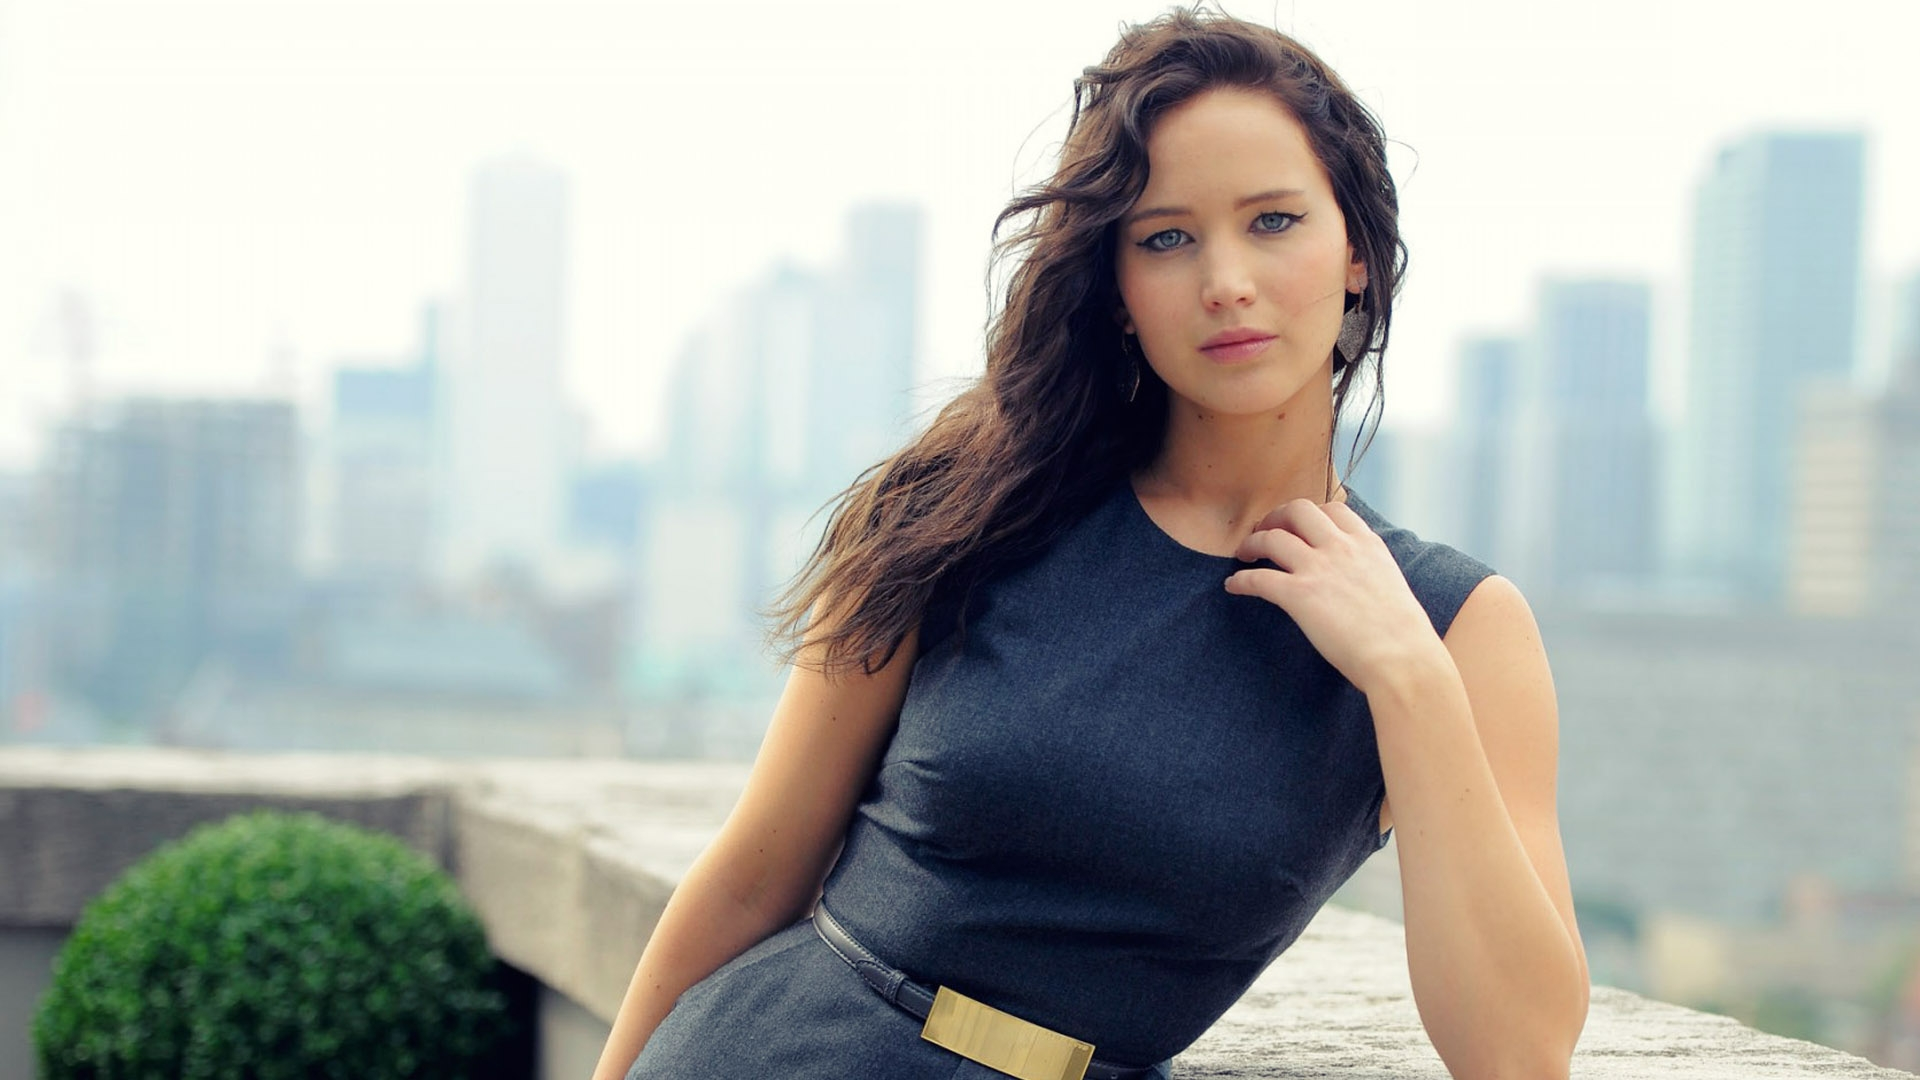 25 Hd Jennifer Lawrence Wallpapers-5368